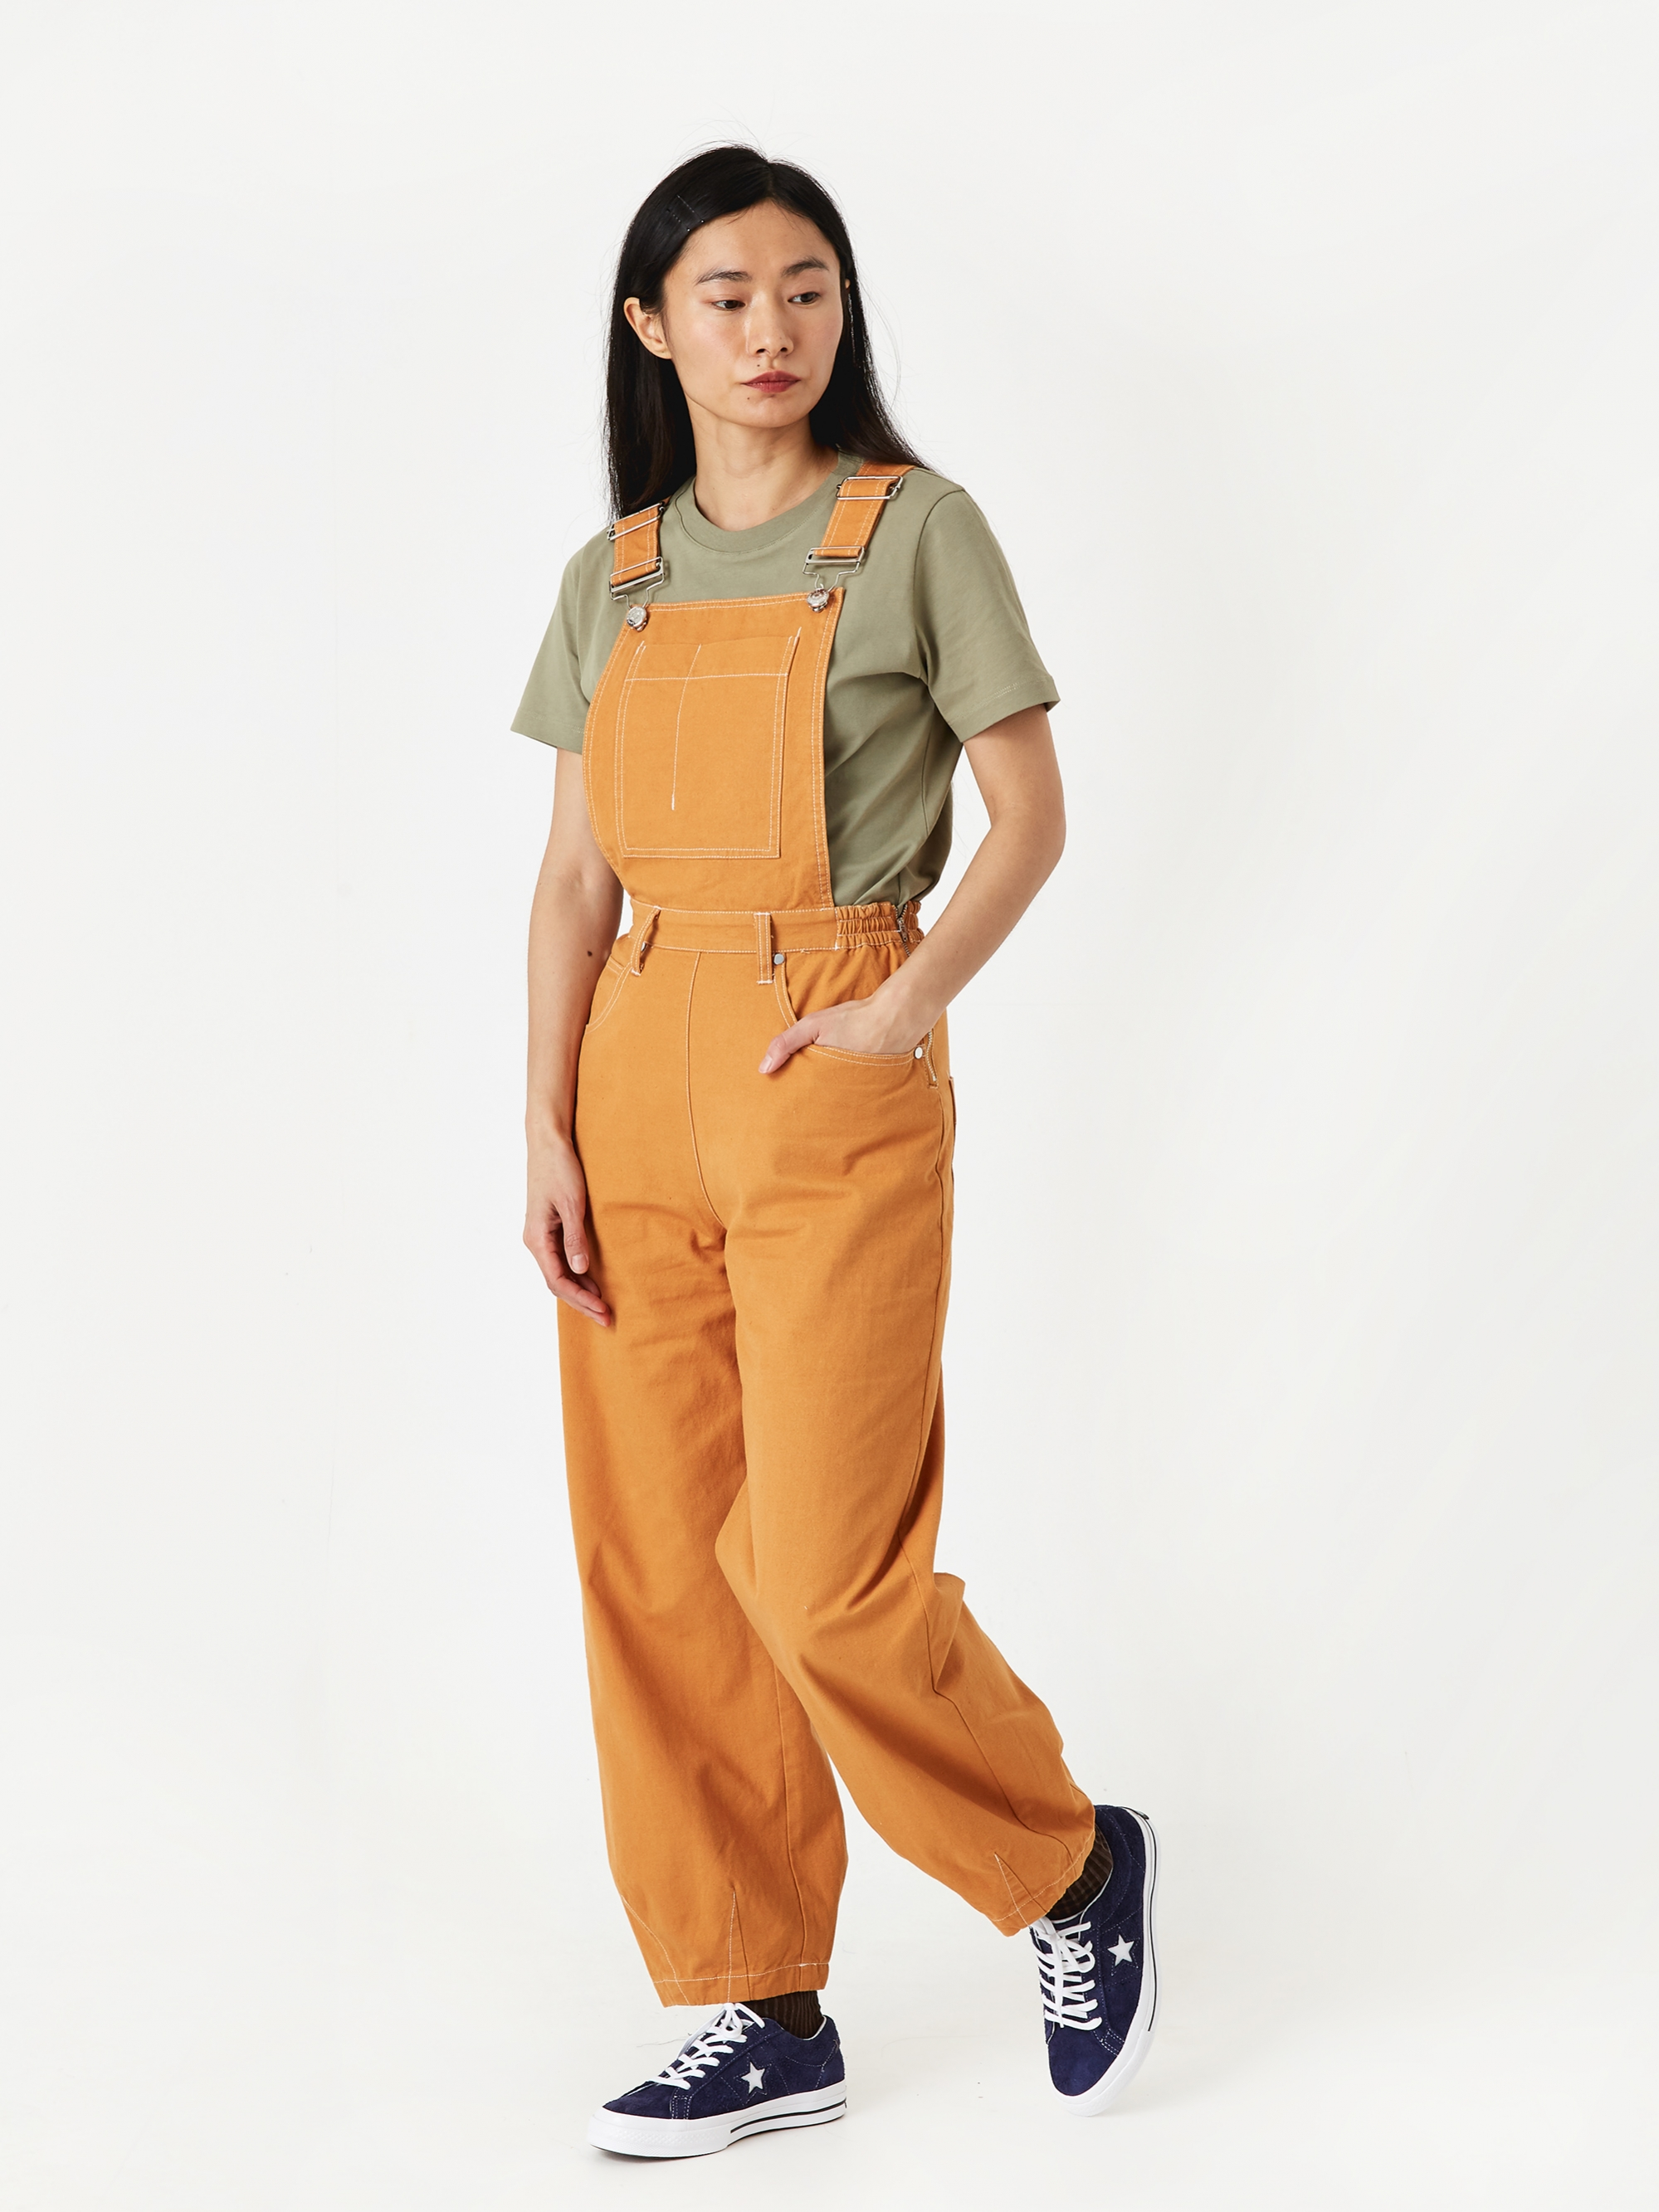 01a394d4fdb LF Markey Fat Boy Dungaree - Camel